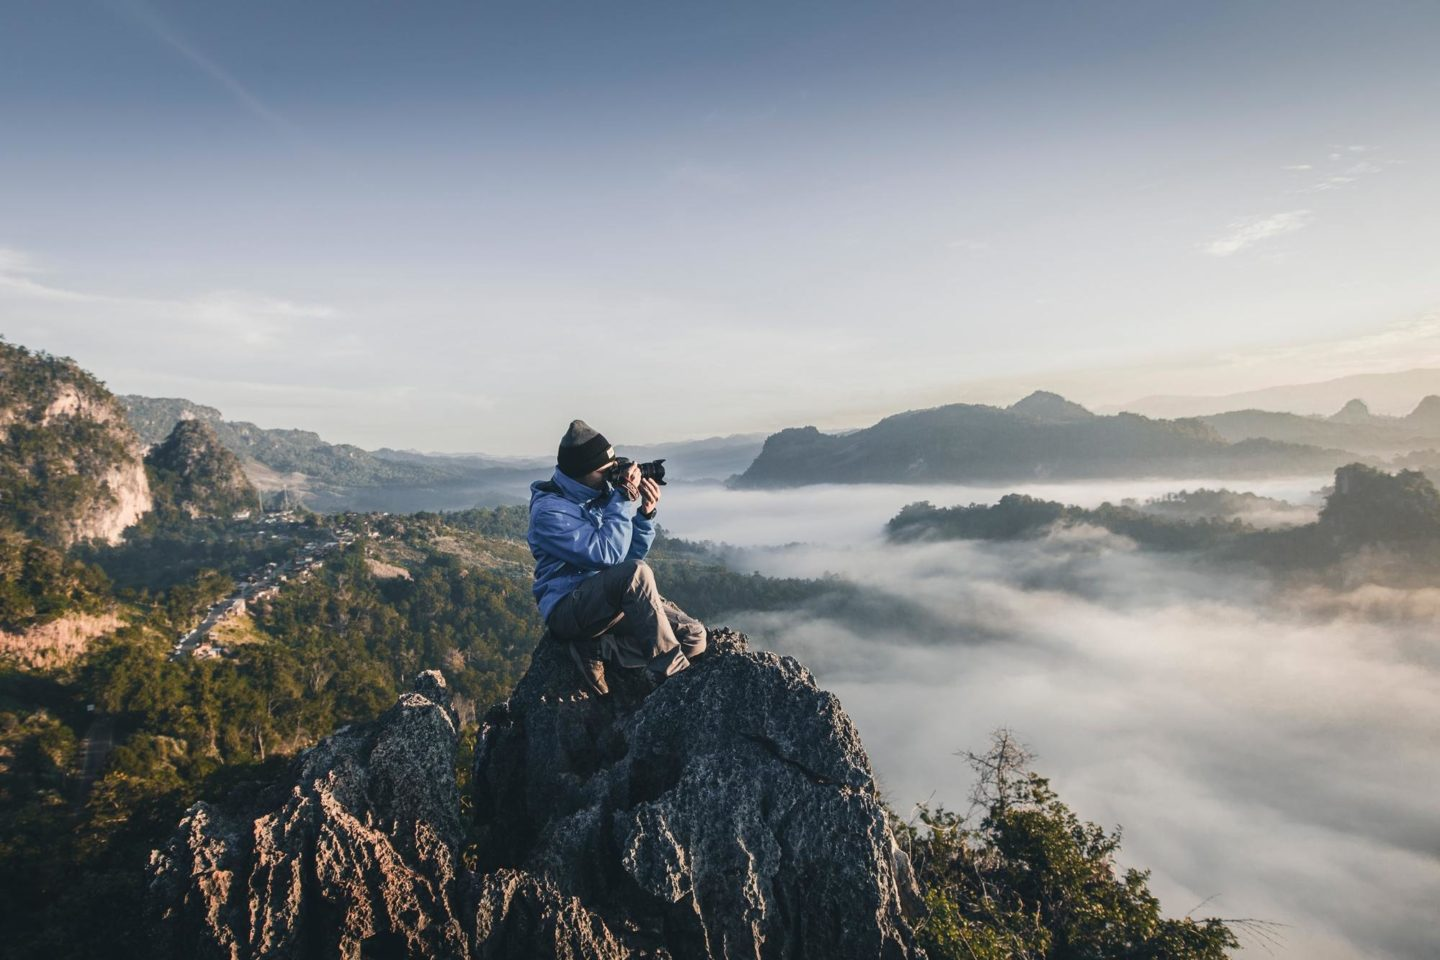 person taking photo sitting on rock in the mountains